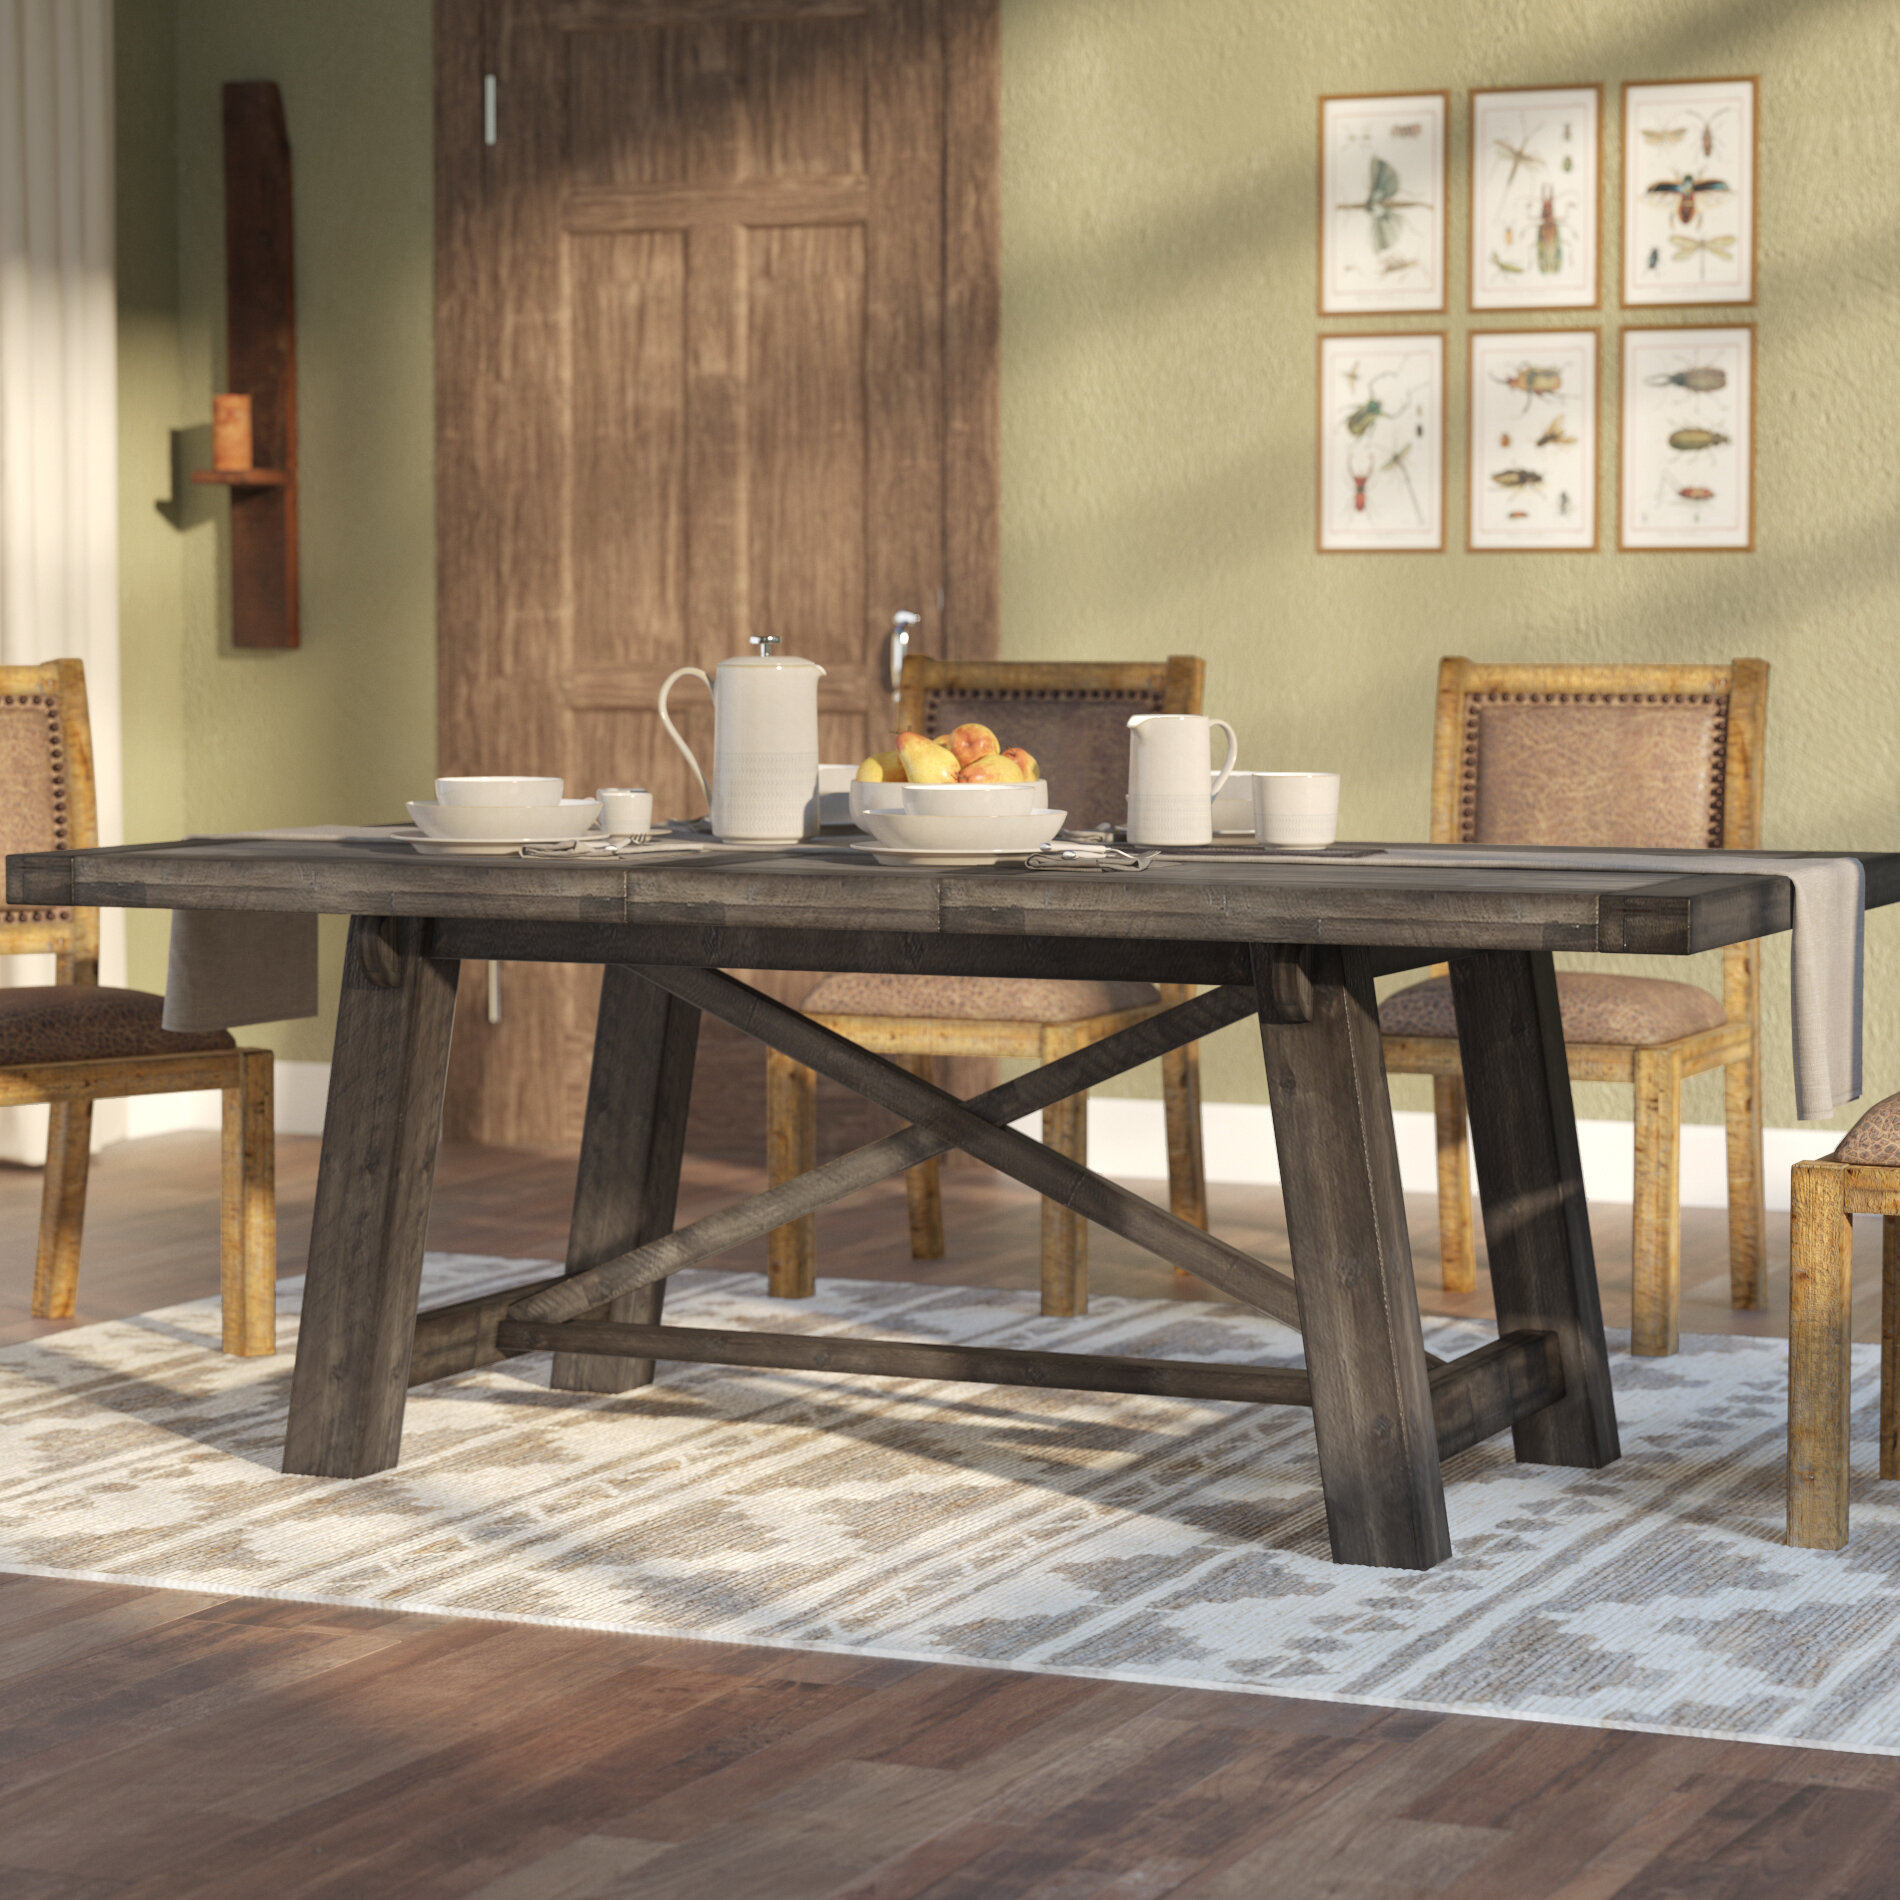 Colborne extendable solid wood dining table reviews birch lane